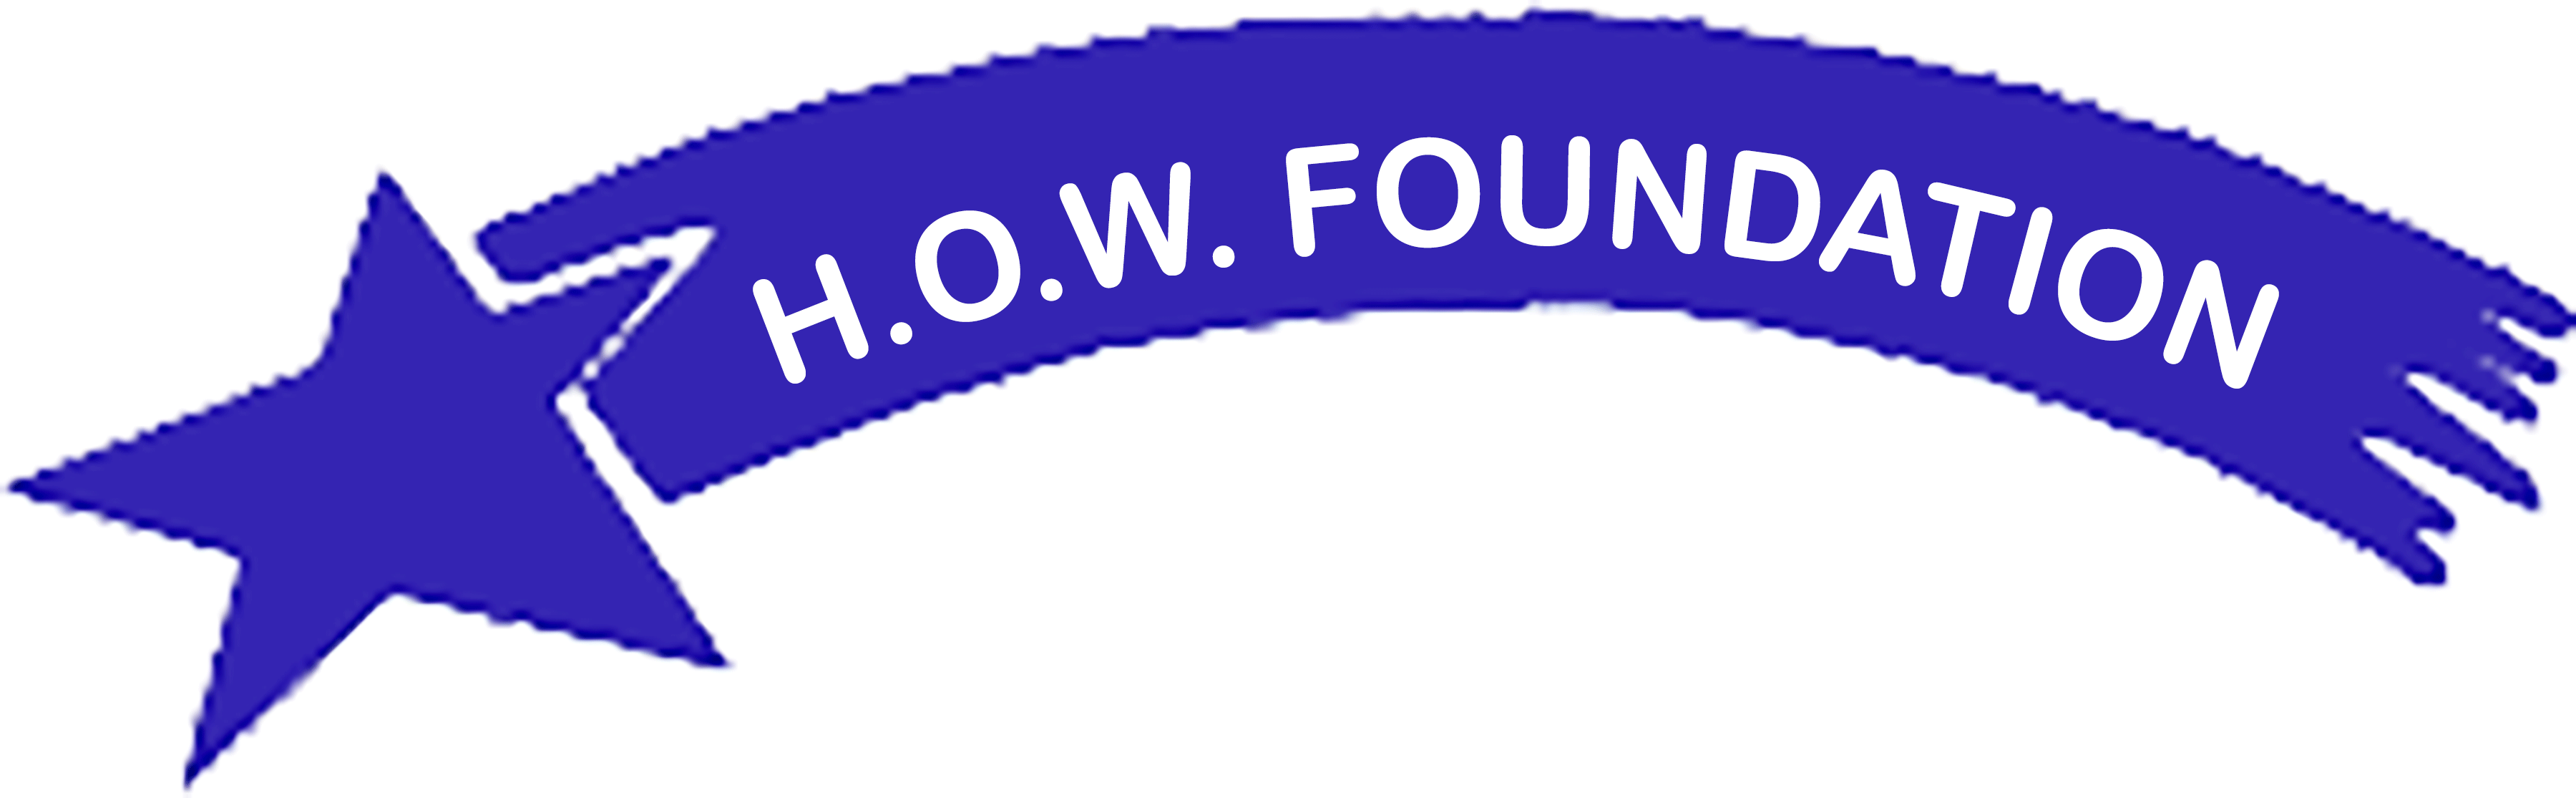 H.O.W. Foundation San Antonio